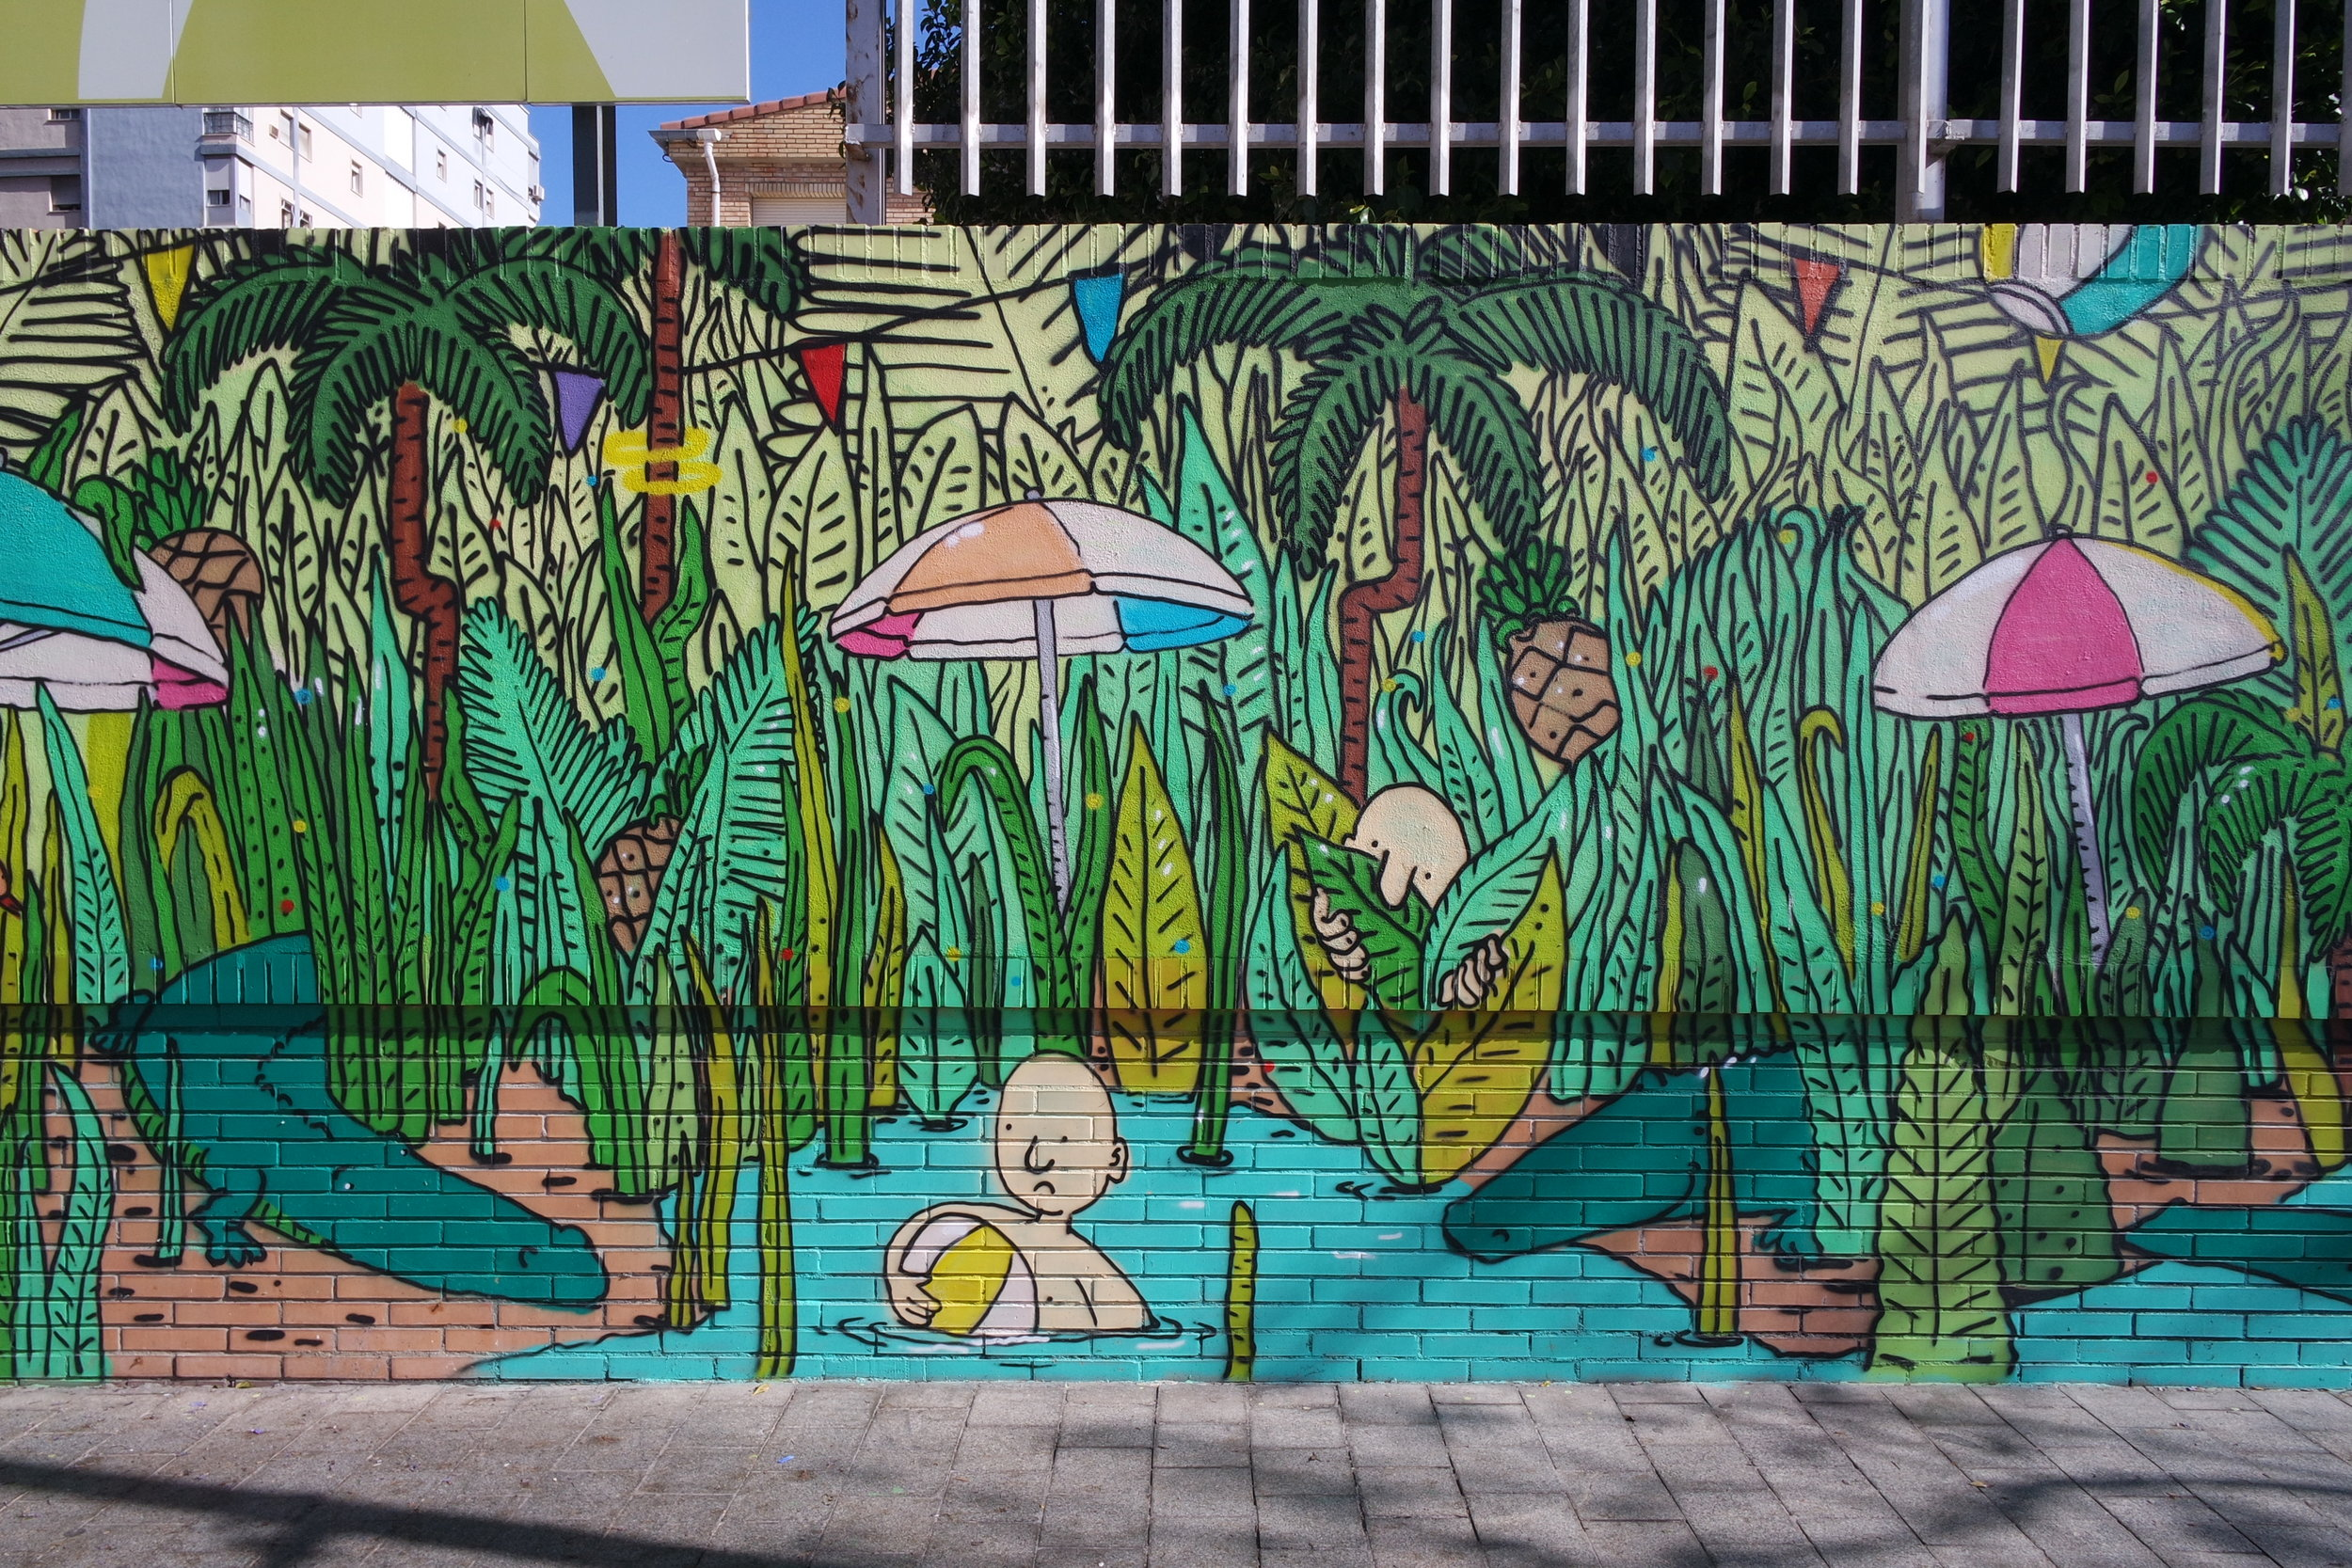 One of the many colorful murals you'll find roaming around Soho, as part of the MAUS initiative